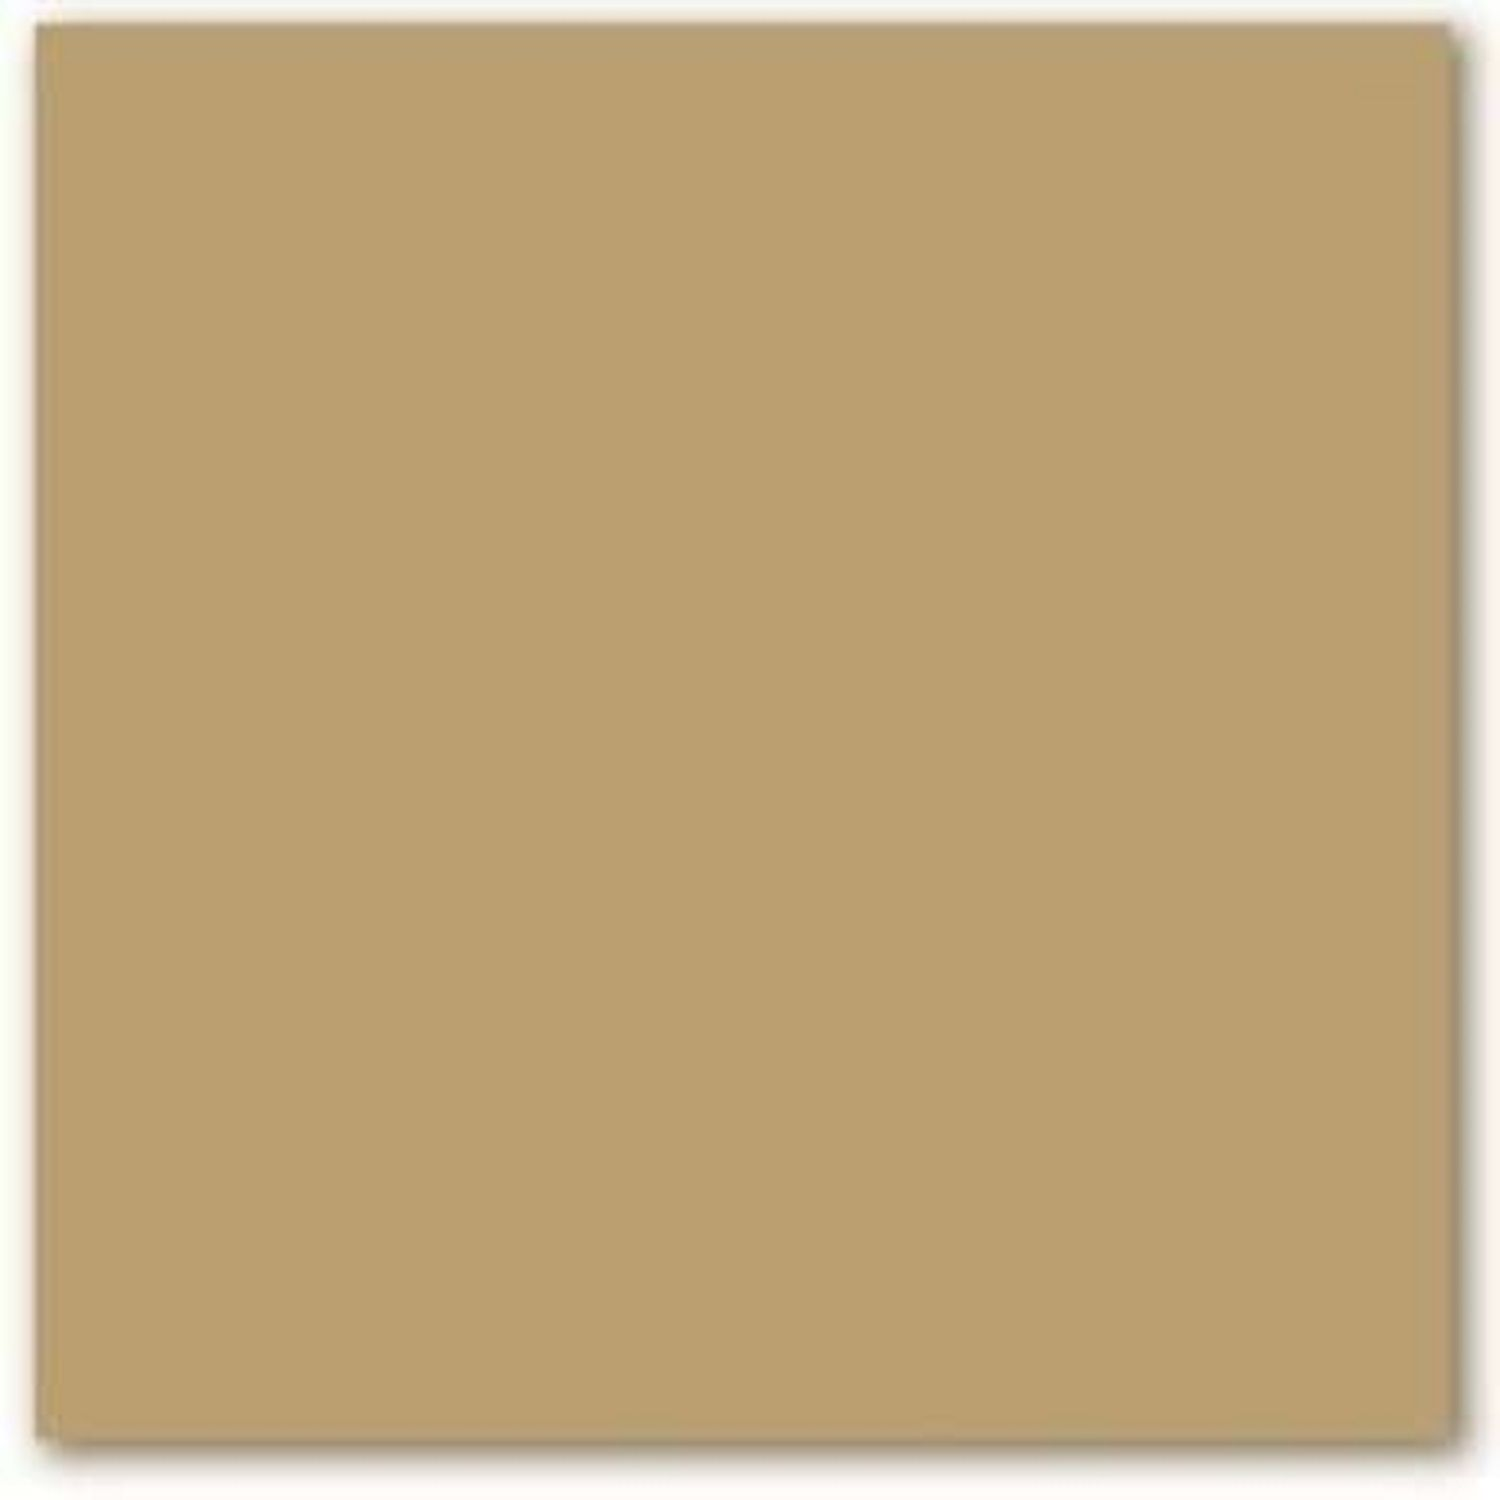 Warm Up Your Rooms With The Color Brown: 12 Beautiful Brown Paint Shades For The Bedroom